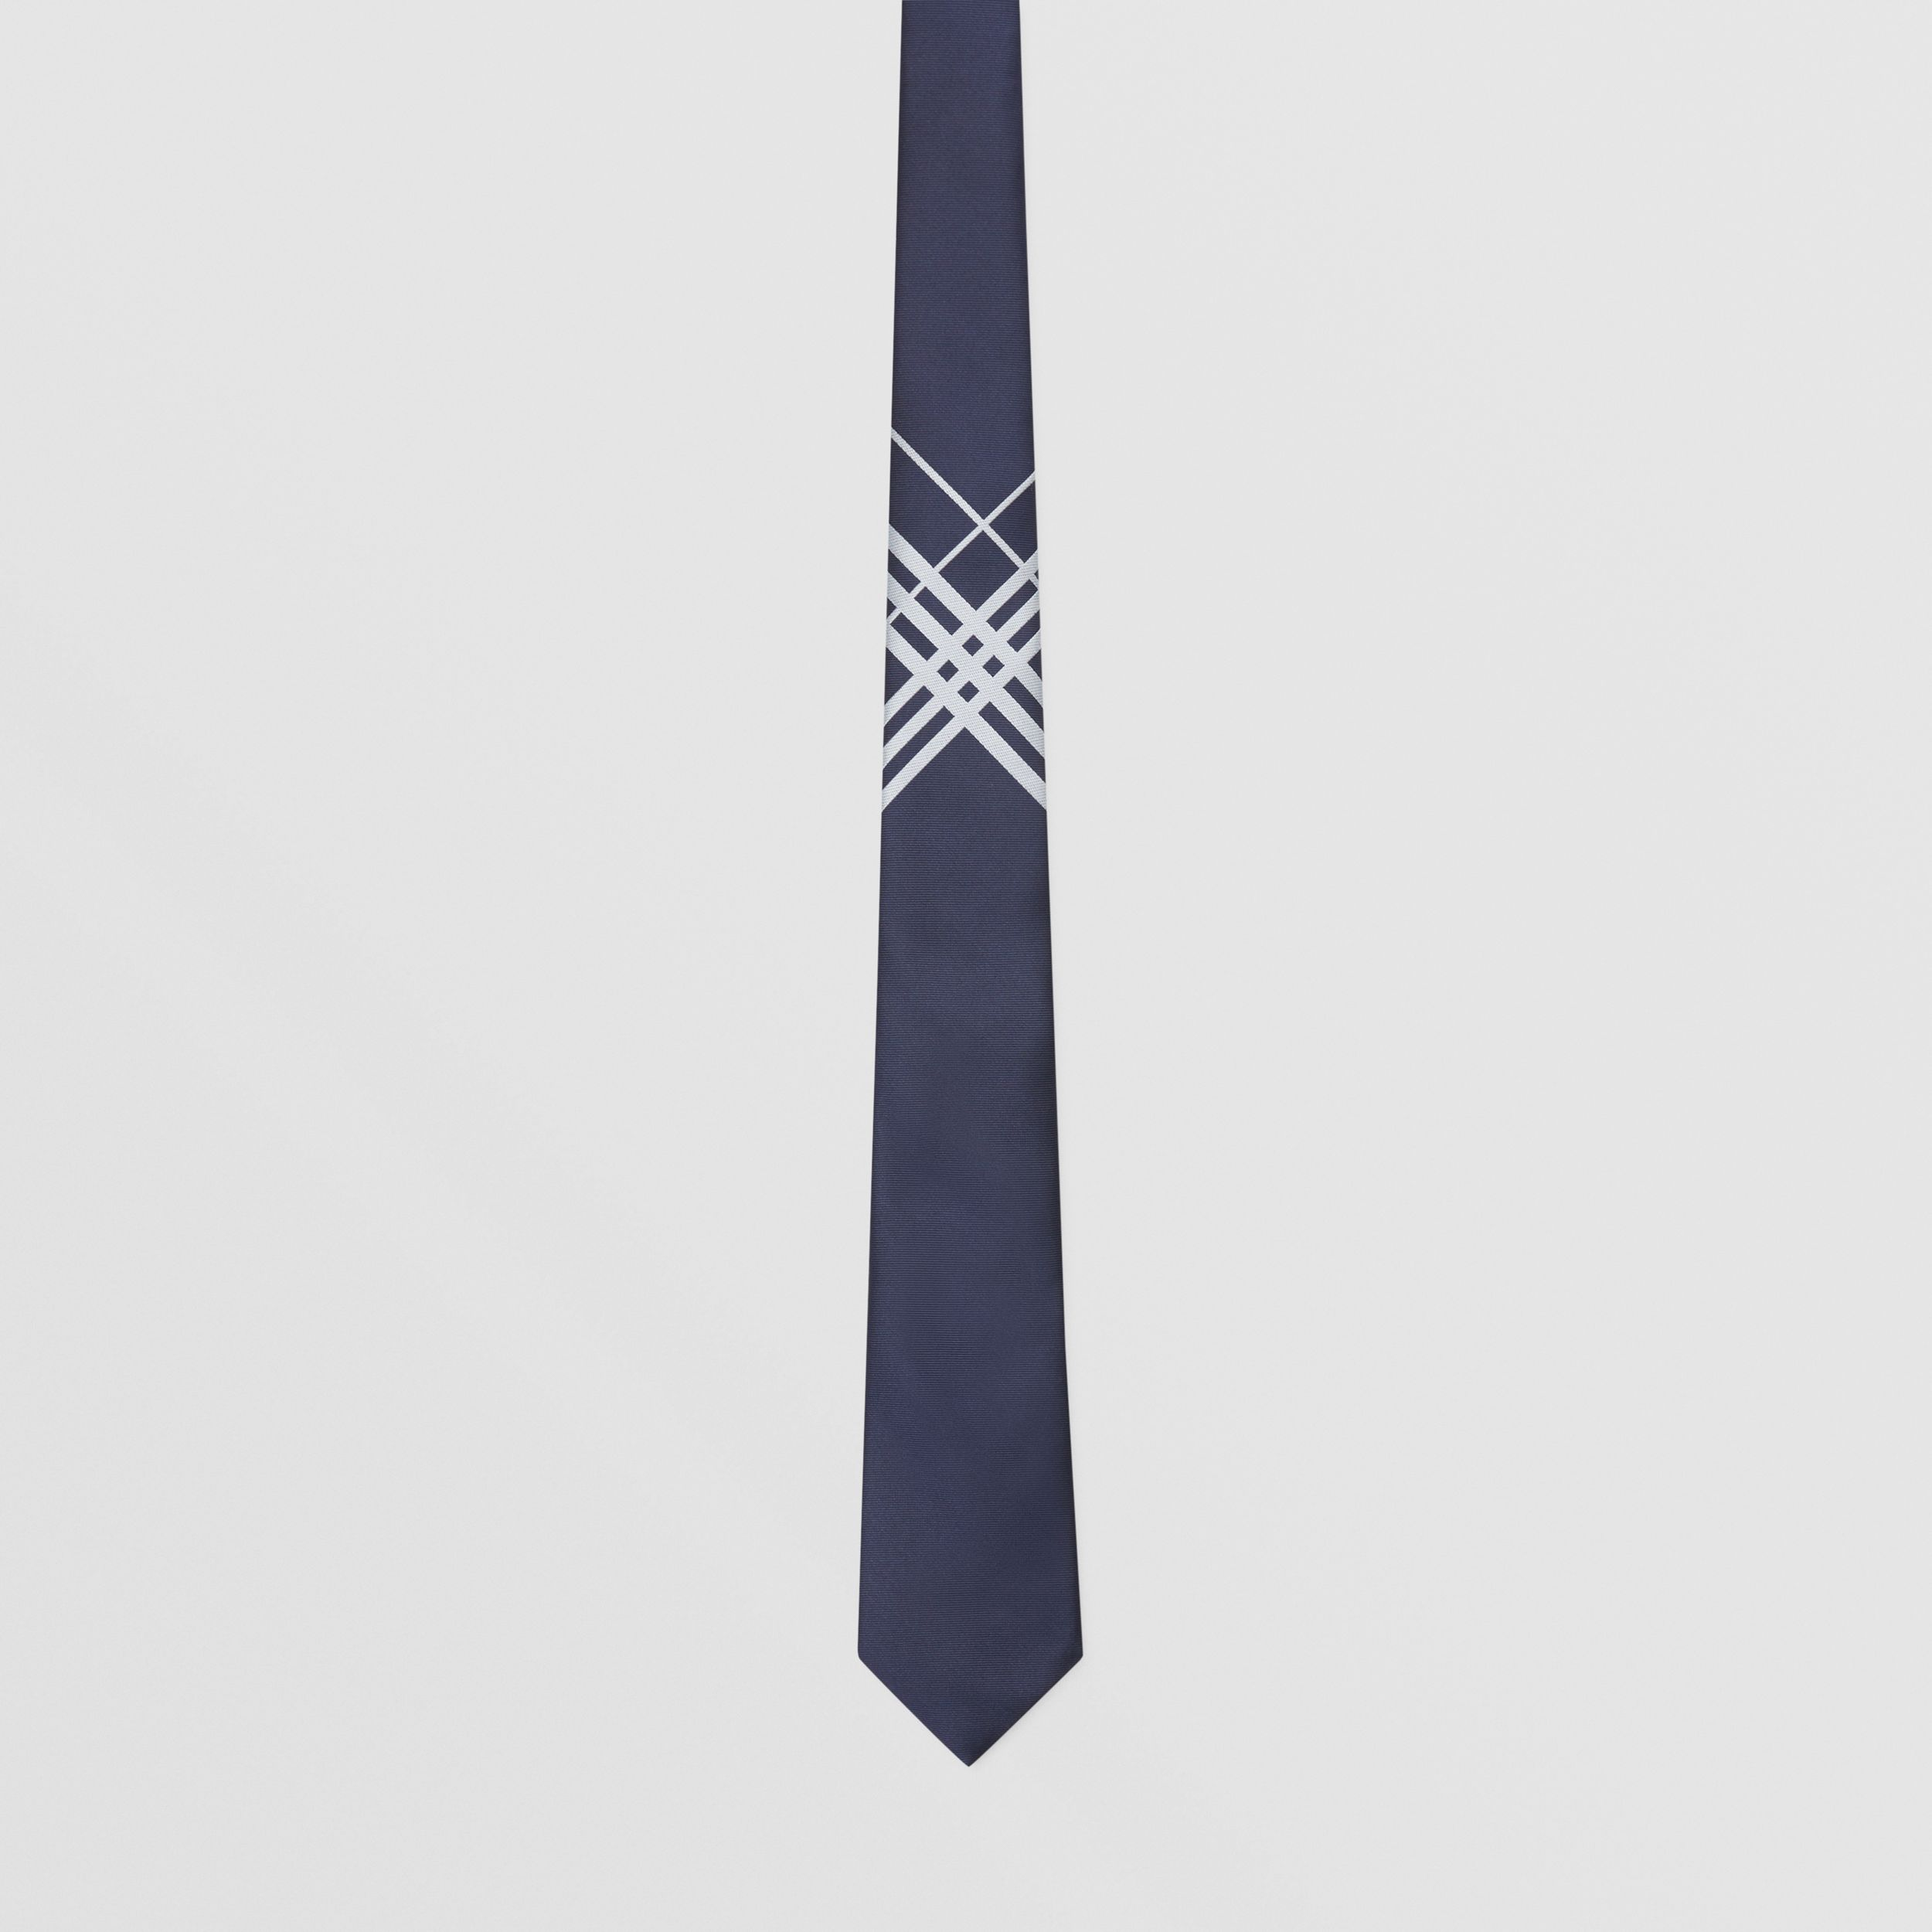 Classic Cut Check Silk Jacquard Tie in Navy - Men | Burberry - 4